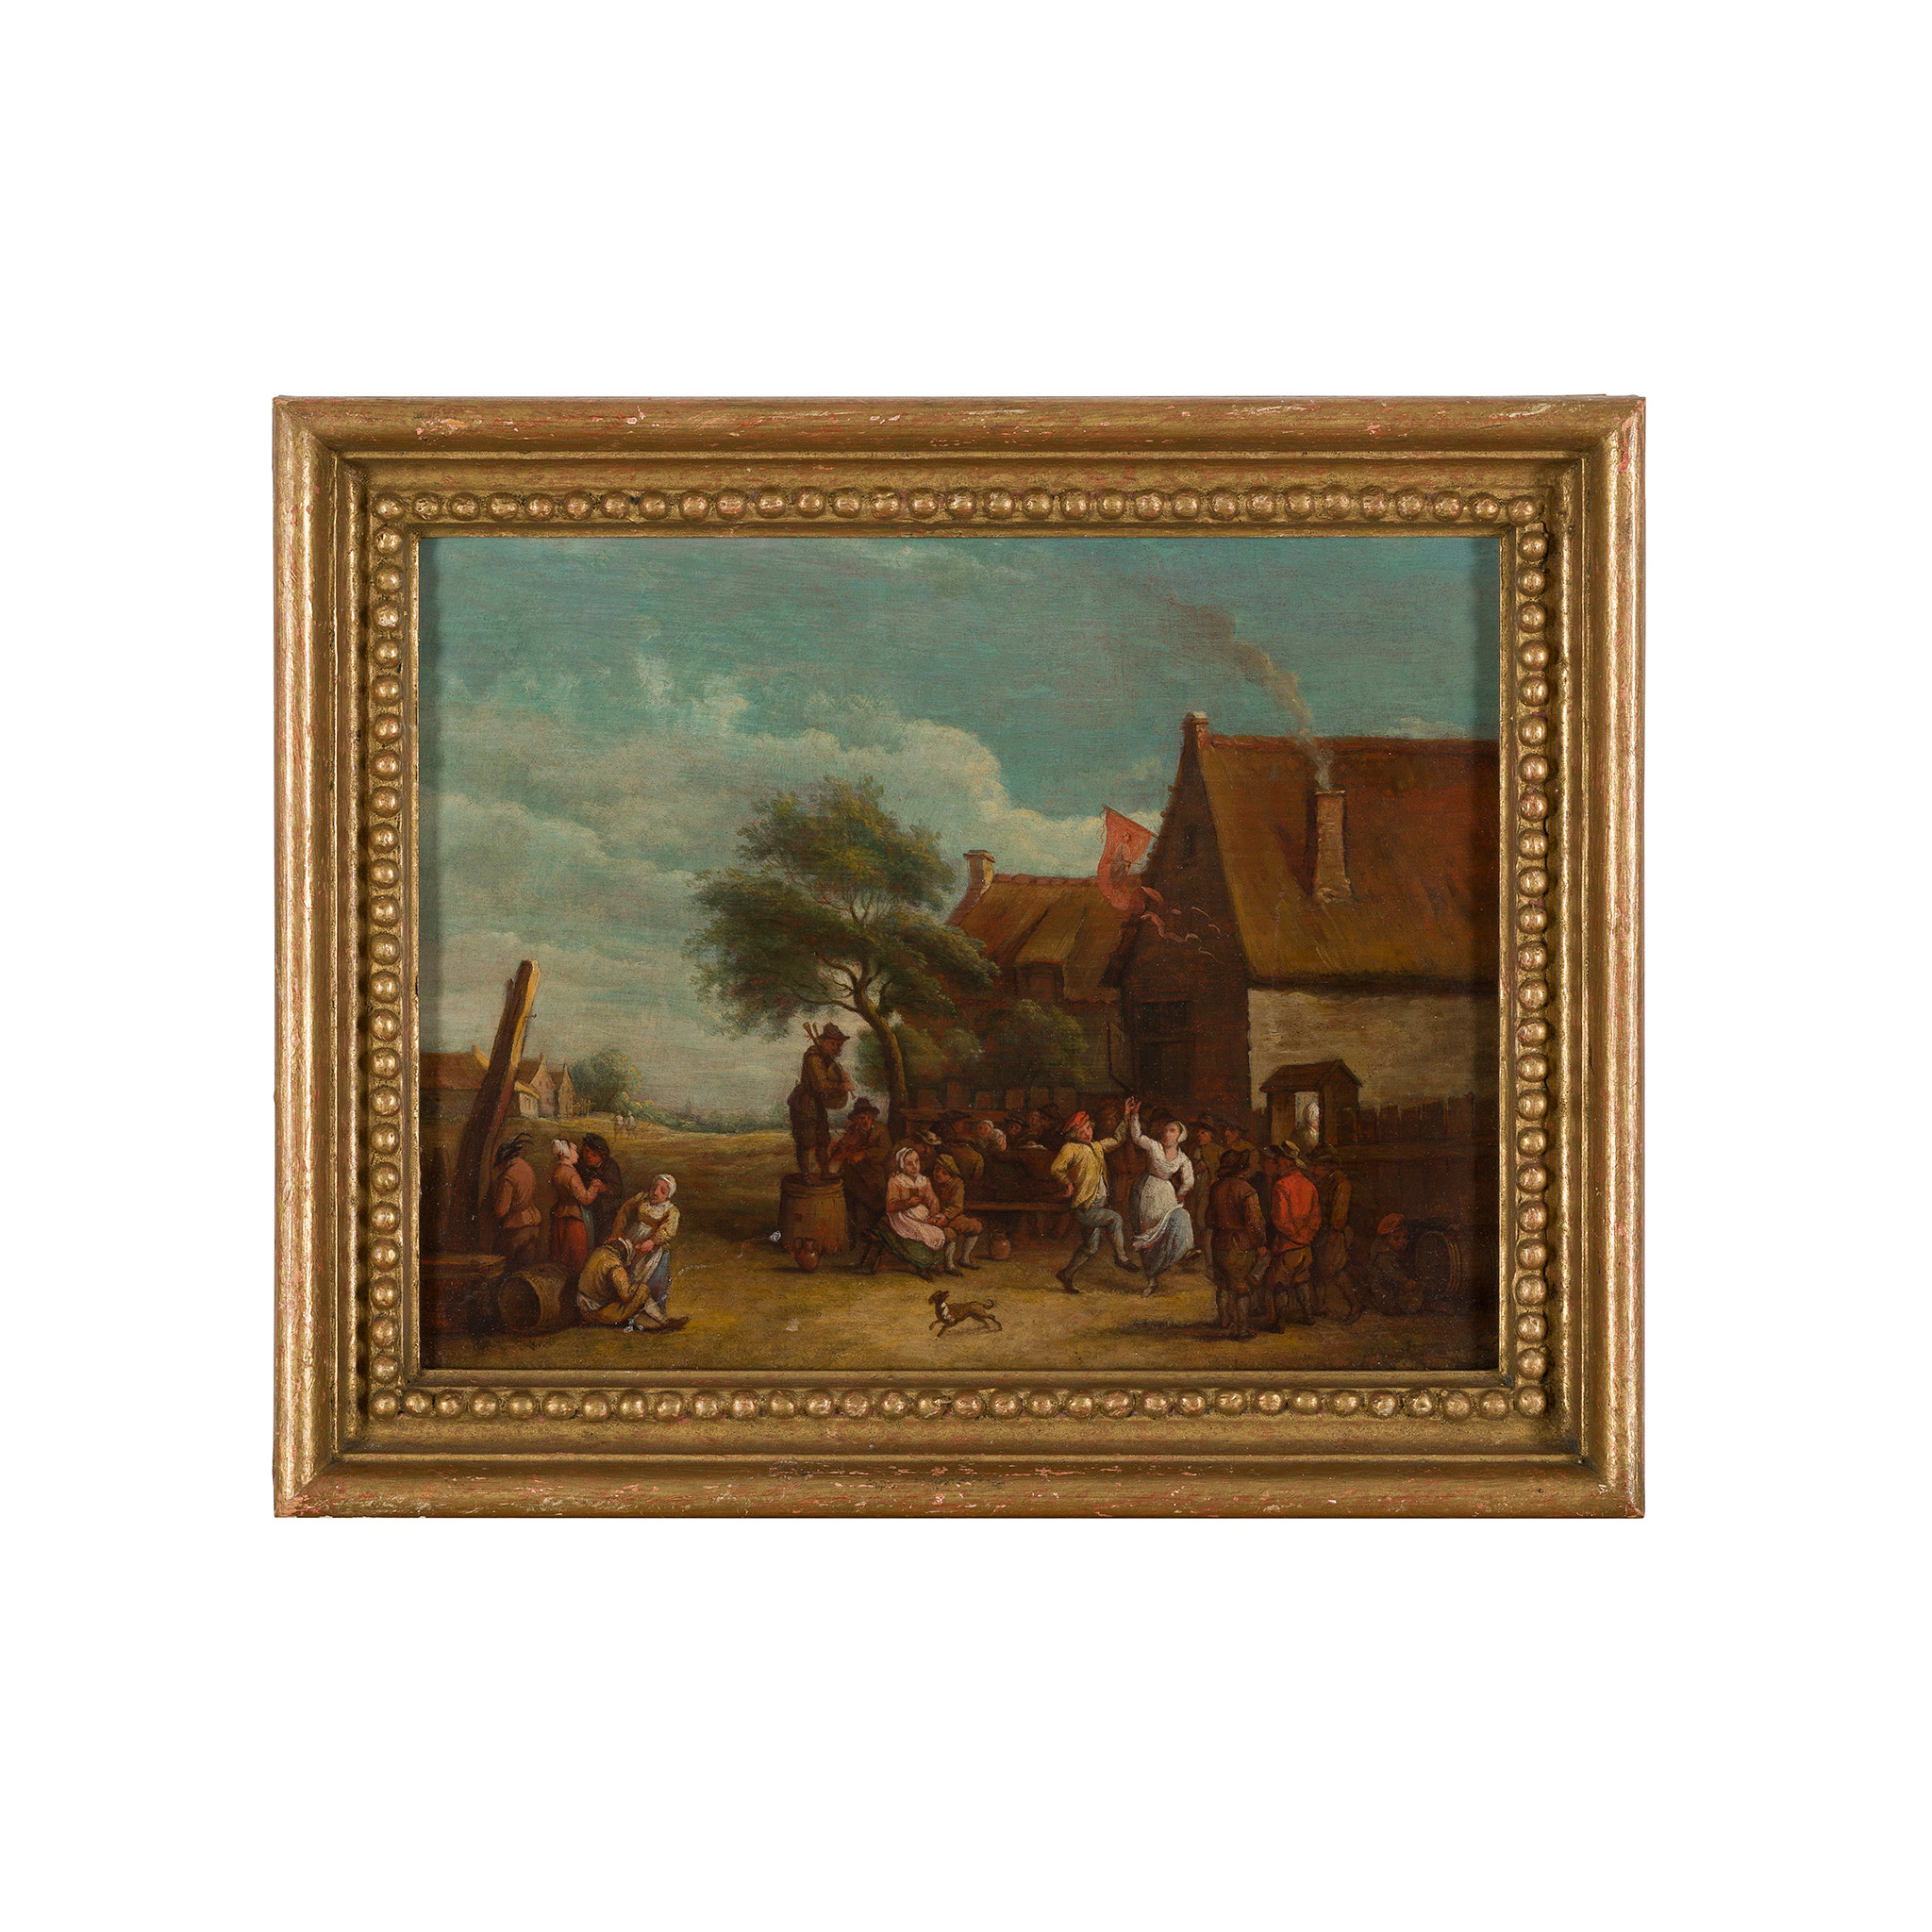 MANNER OF DAVID TENIERS A VILLAGE DANCE - Image 2 of 3